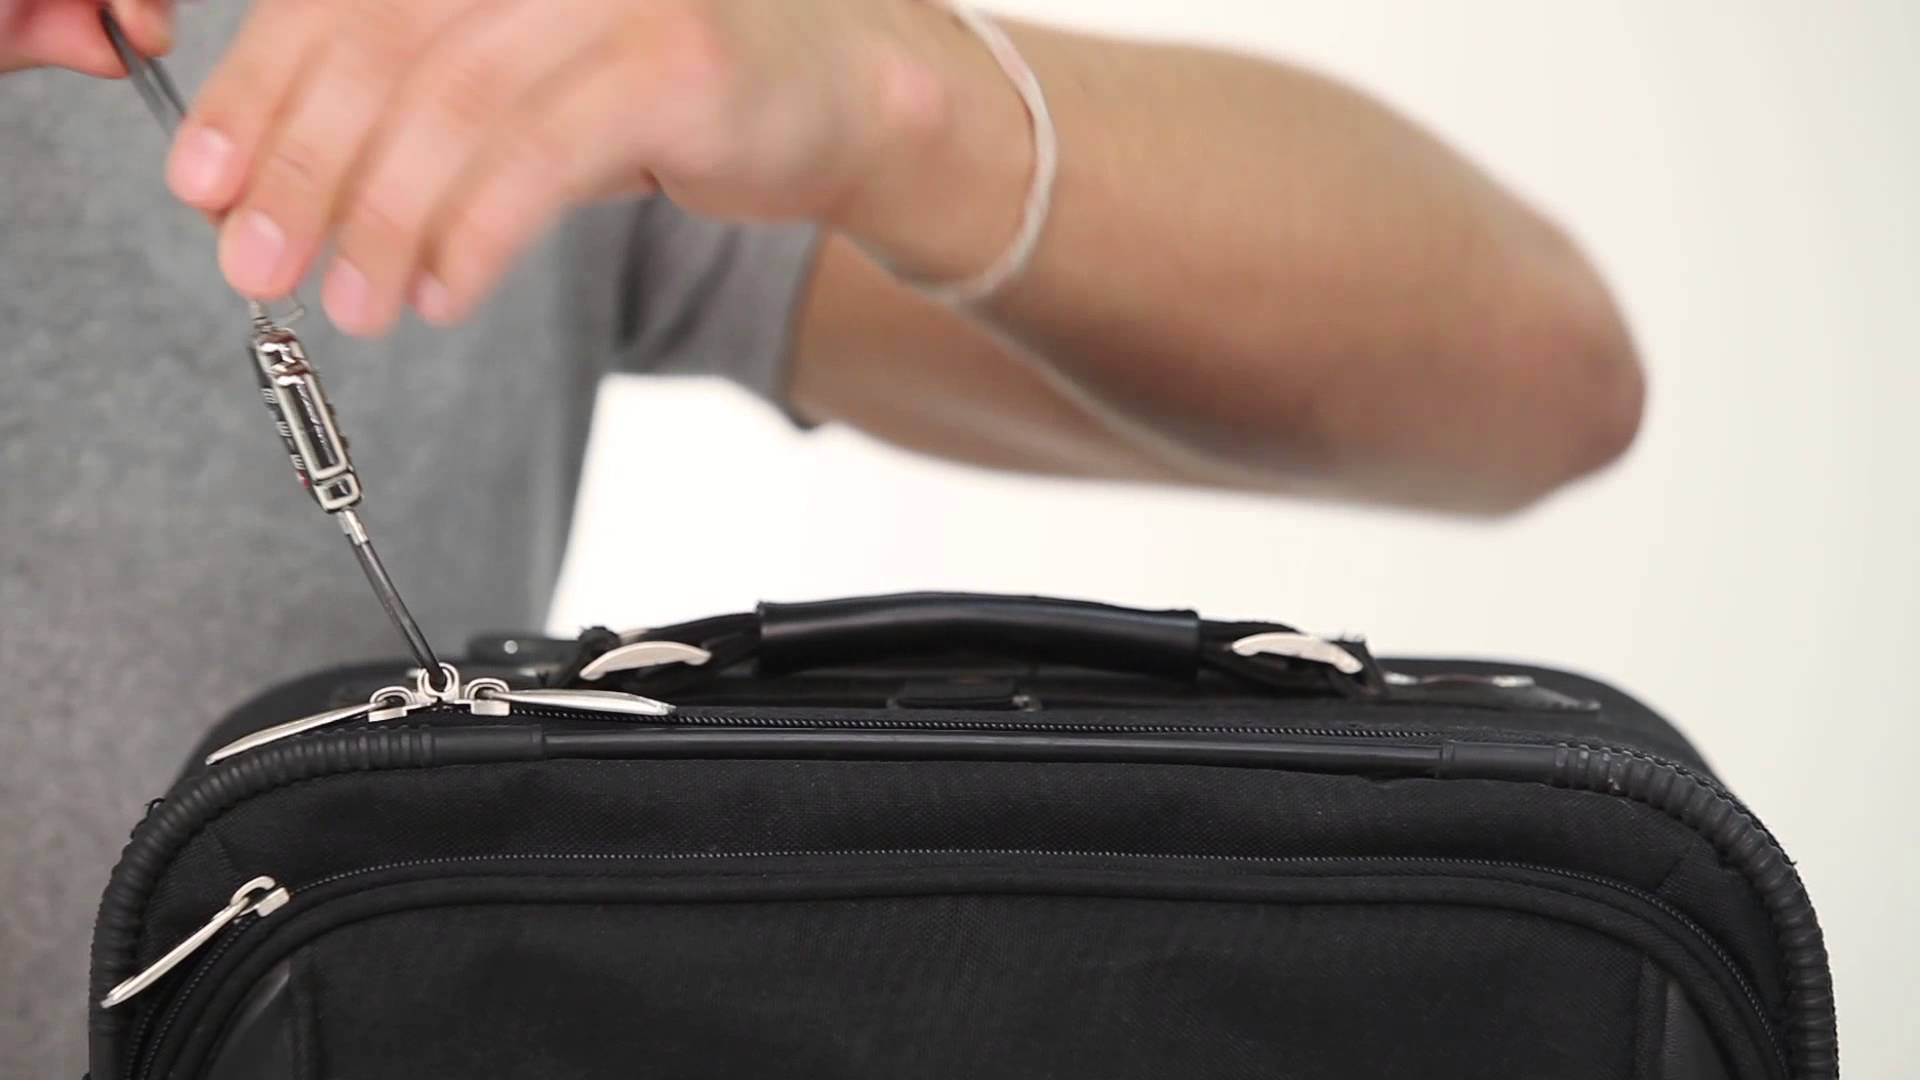 Easy and Reliable Ways to Lock Your Zippers